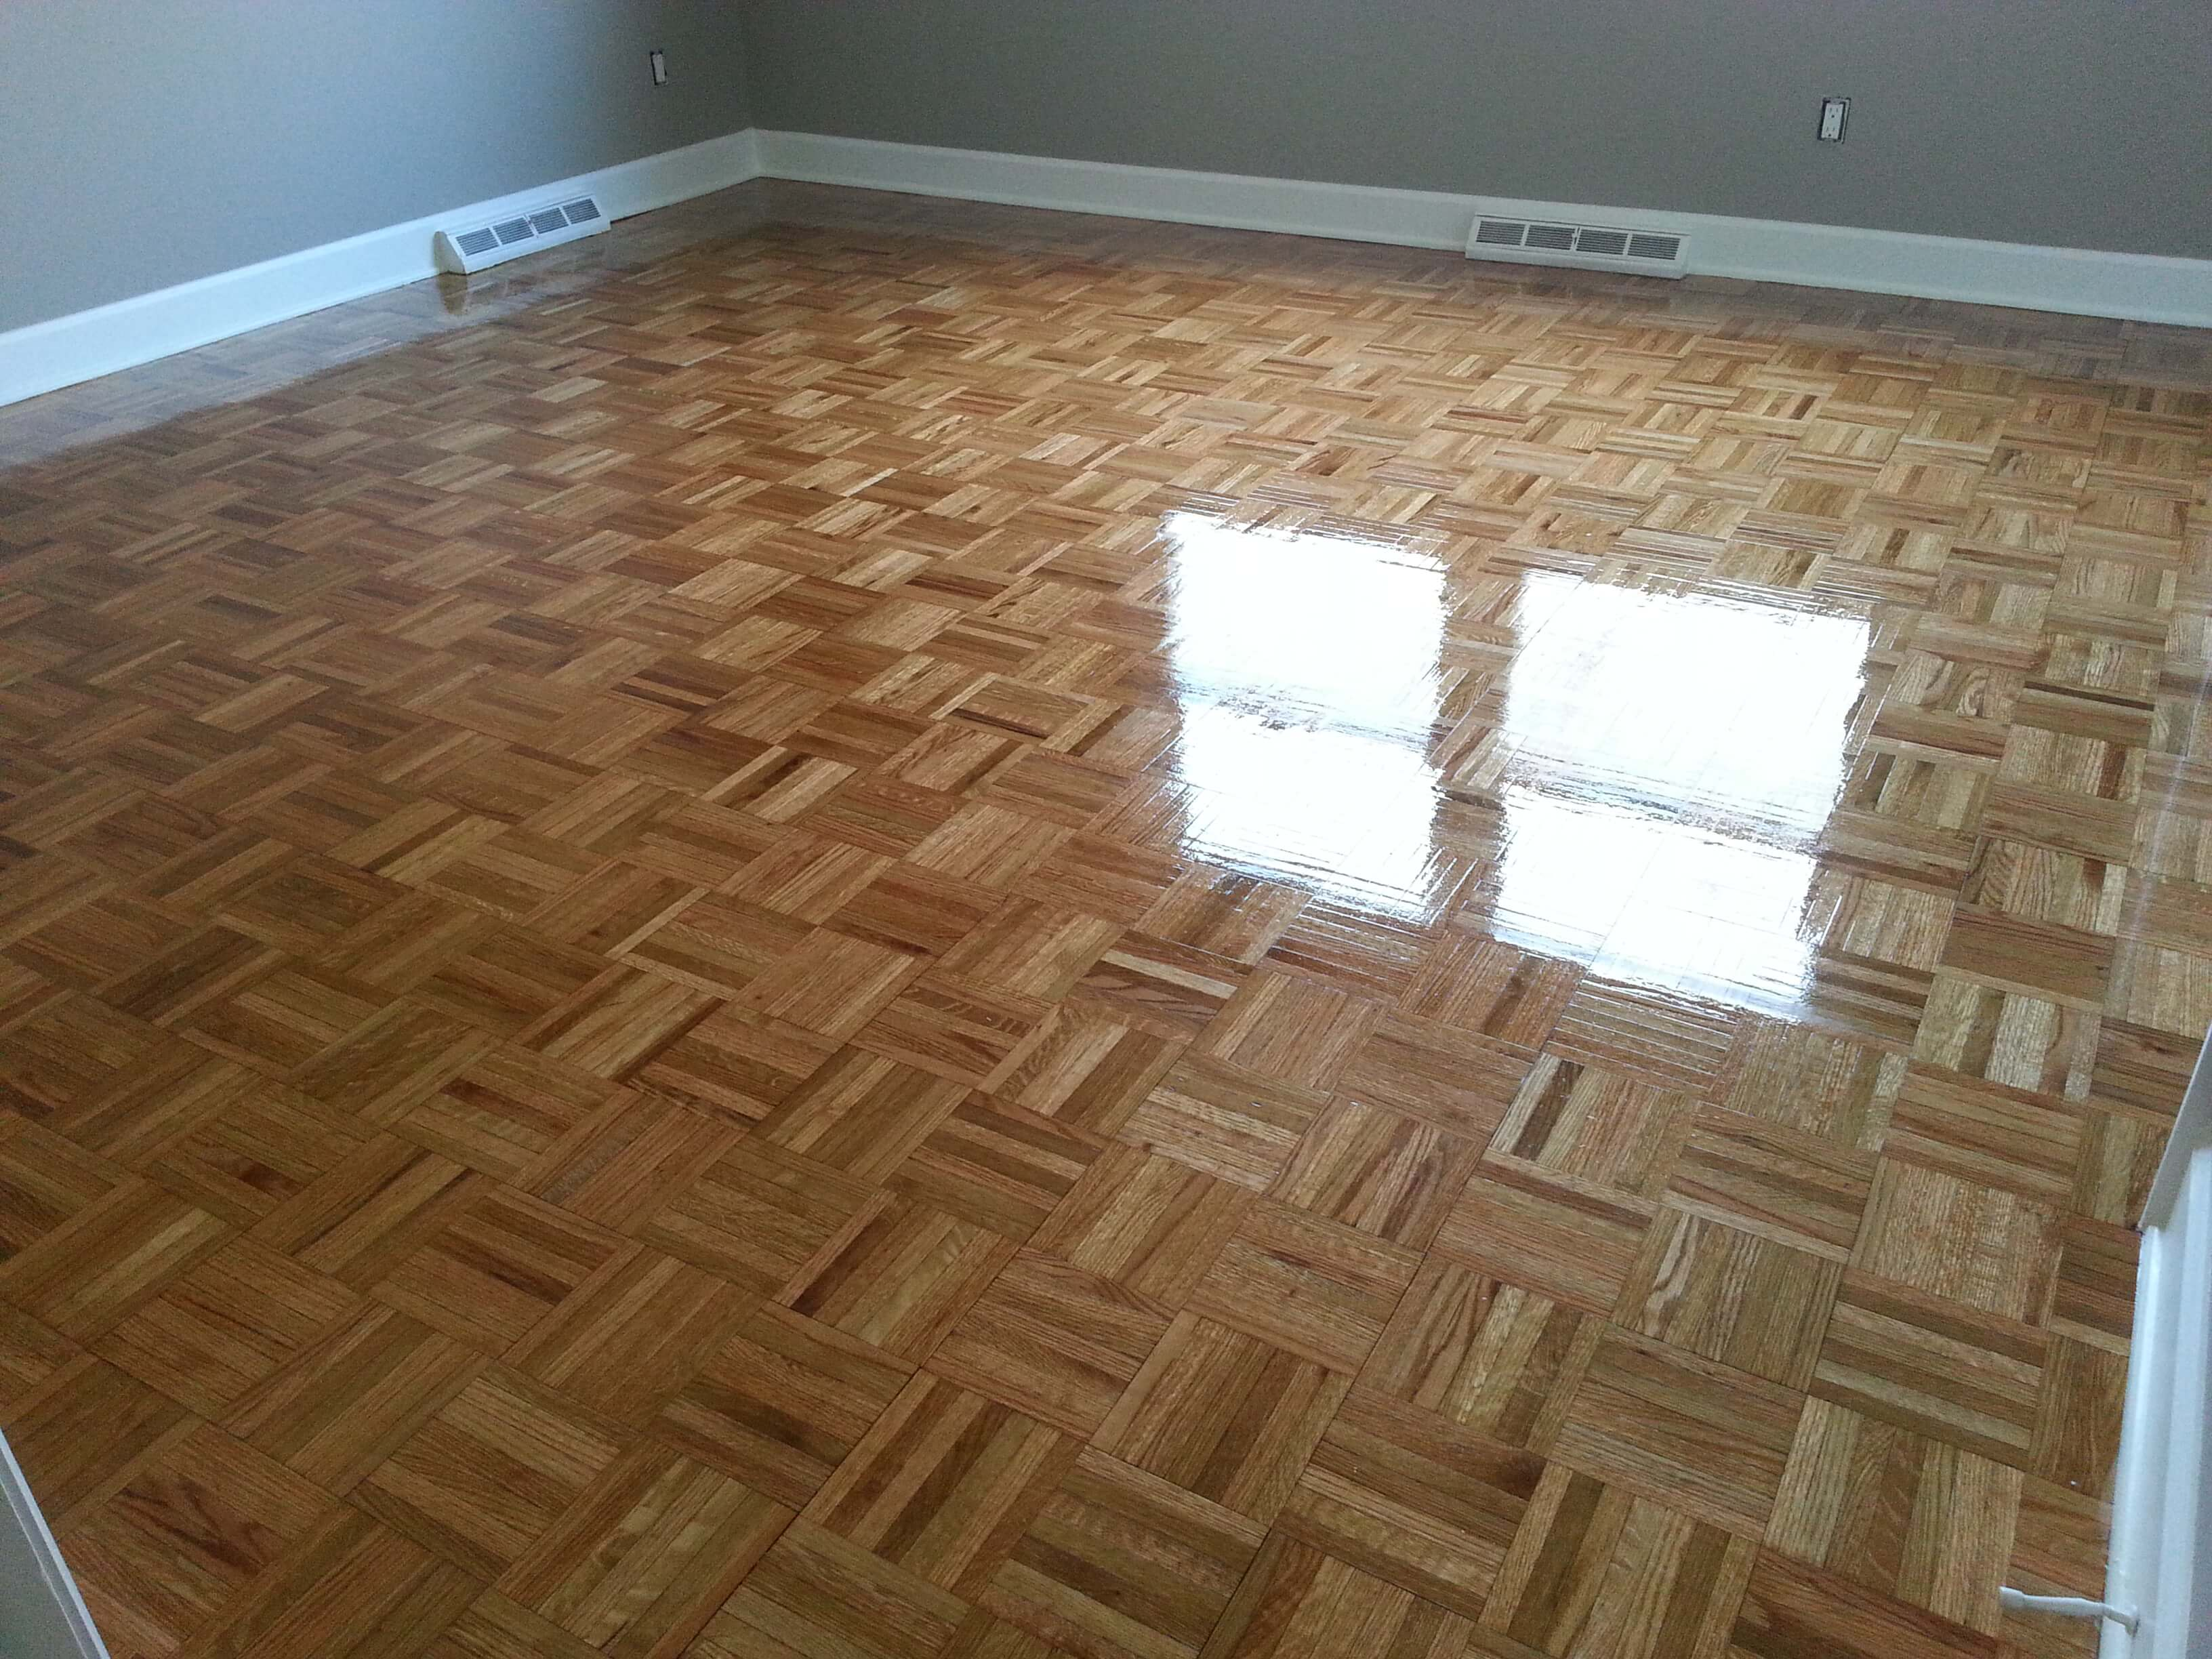 a refinished hardwood floor with a parquet design in Denver